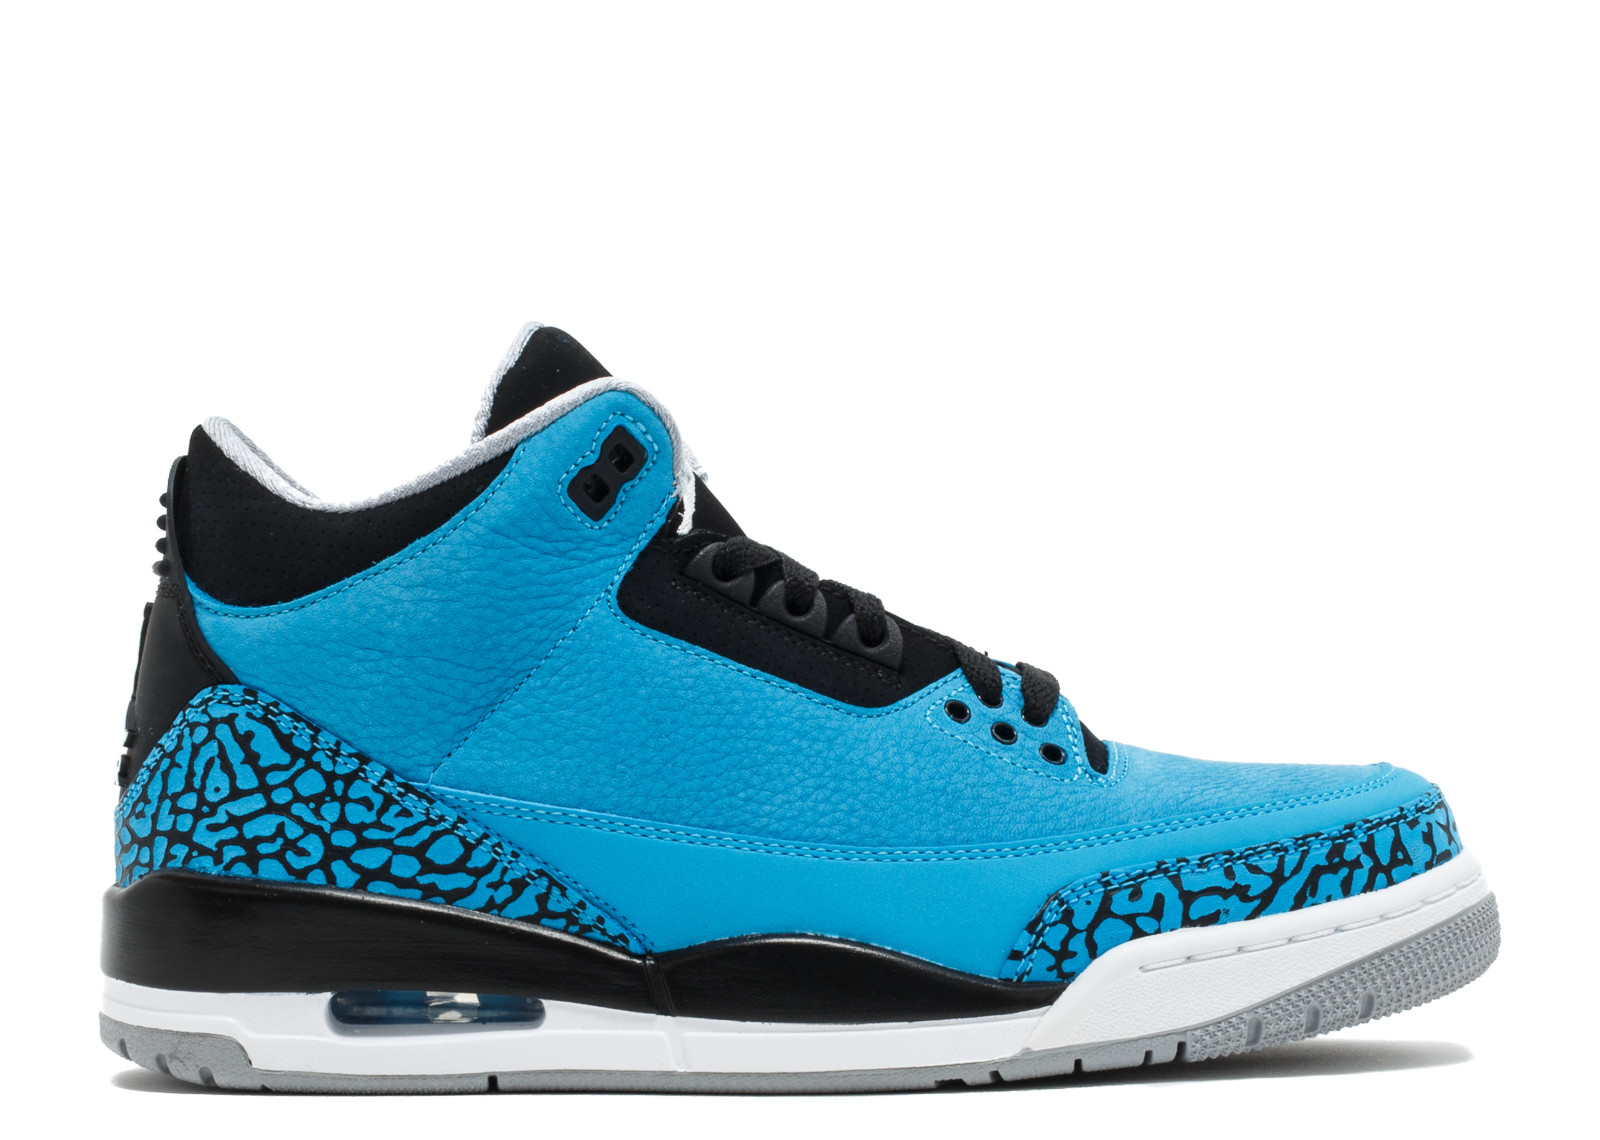 0d1c3cd0588d19 Air Jordan - Men - Air Jordan 3 Retro  Powder Blue  - 136064-406 - Size 8